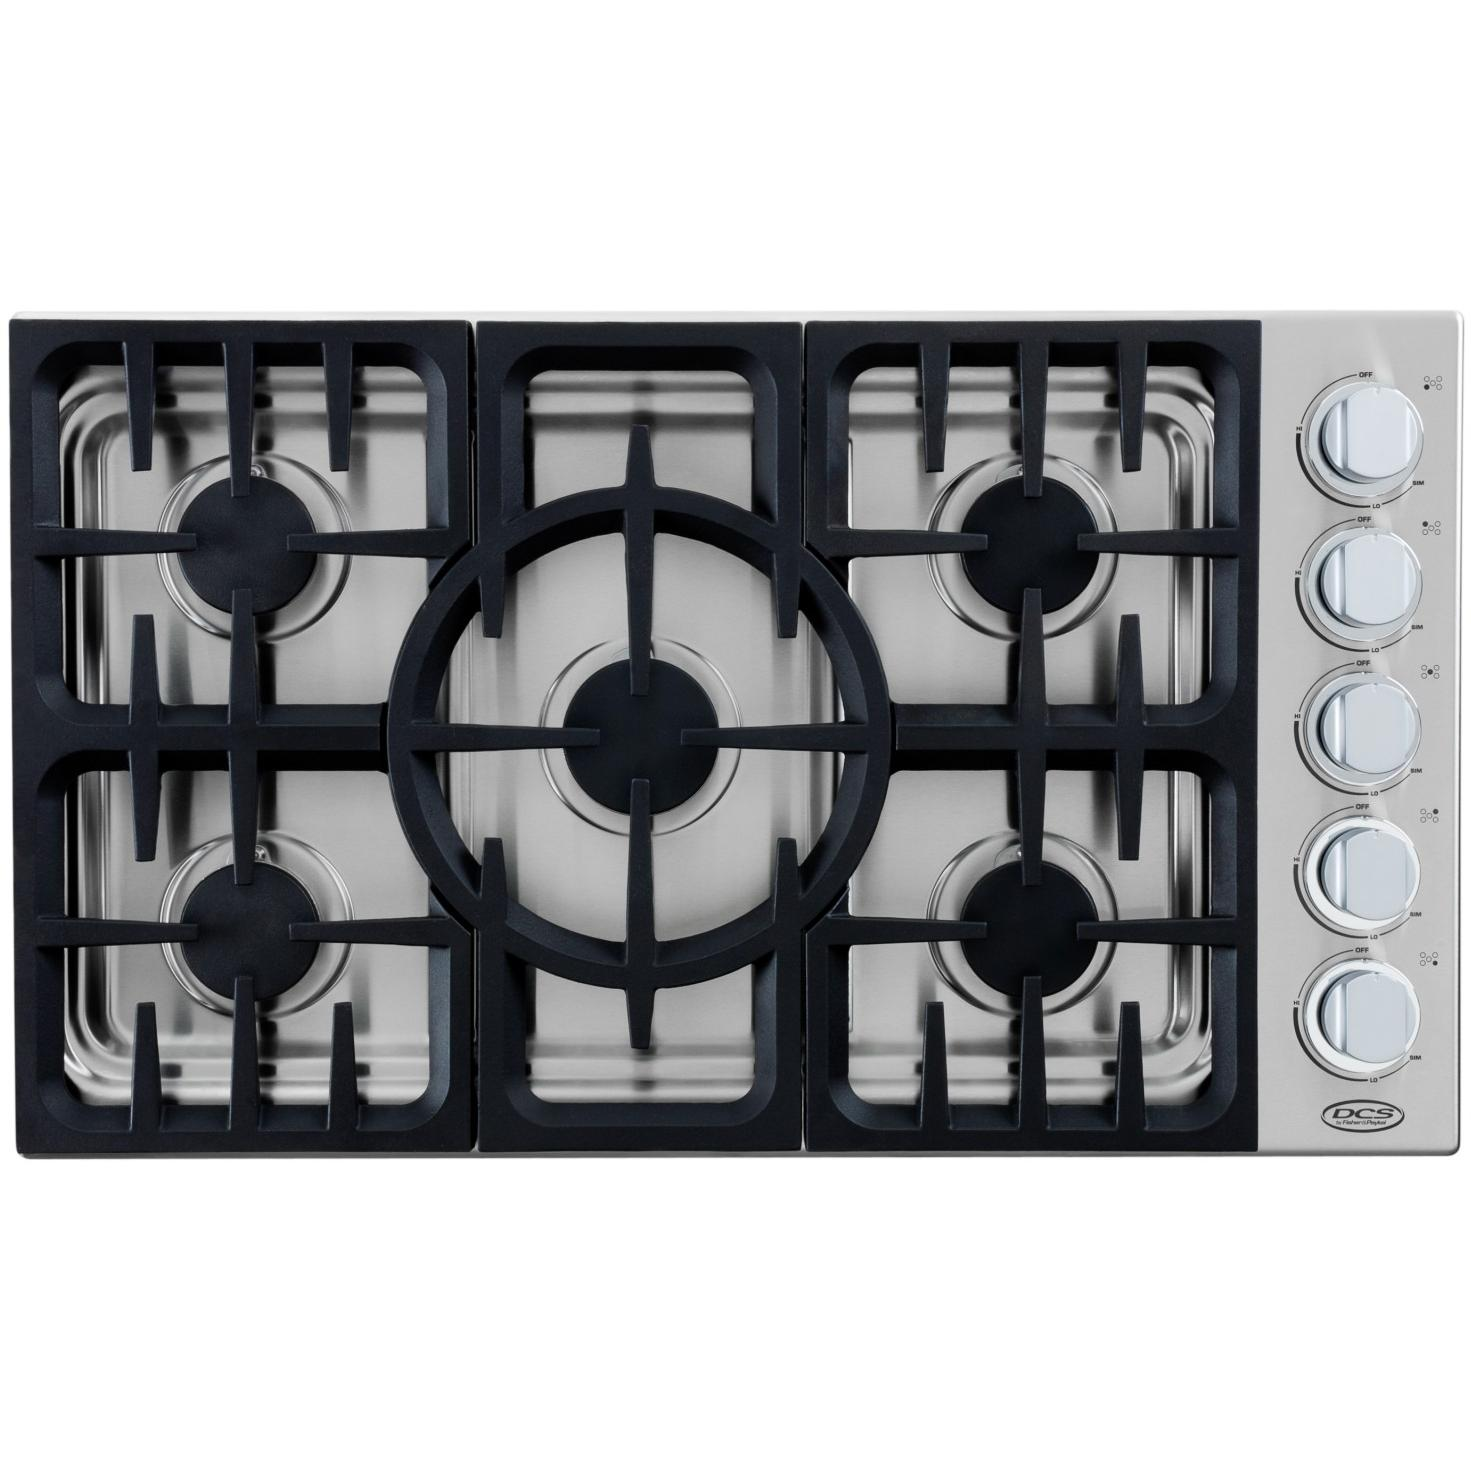 DCS CDU365N 36-Inch Natural Gas Drop-in Cooktop By Fisher Paykel